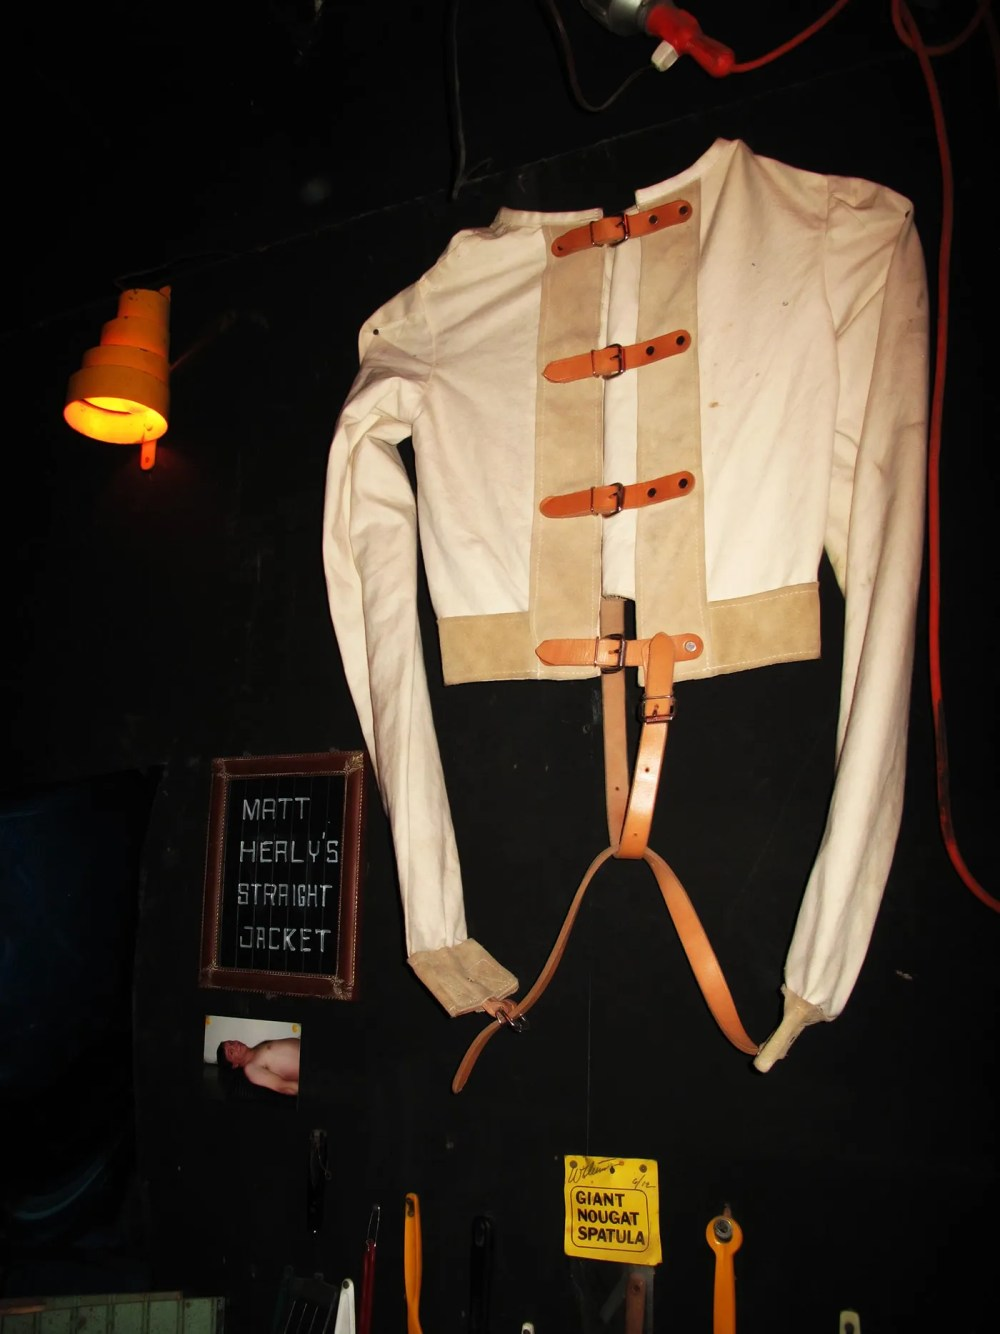 Matt Healy's straight jacket in the City Museum's Museum of Mirth, Mystery and Mayhem in St. Louis, Missouri.